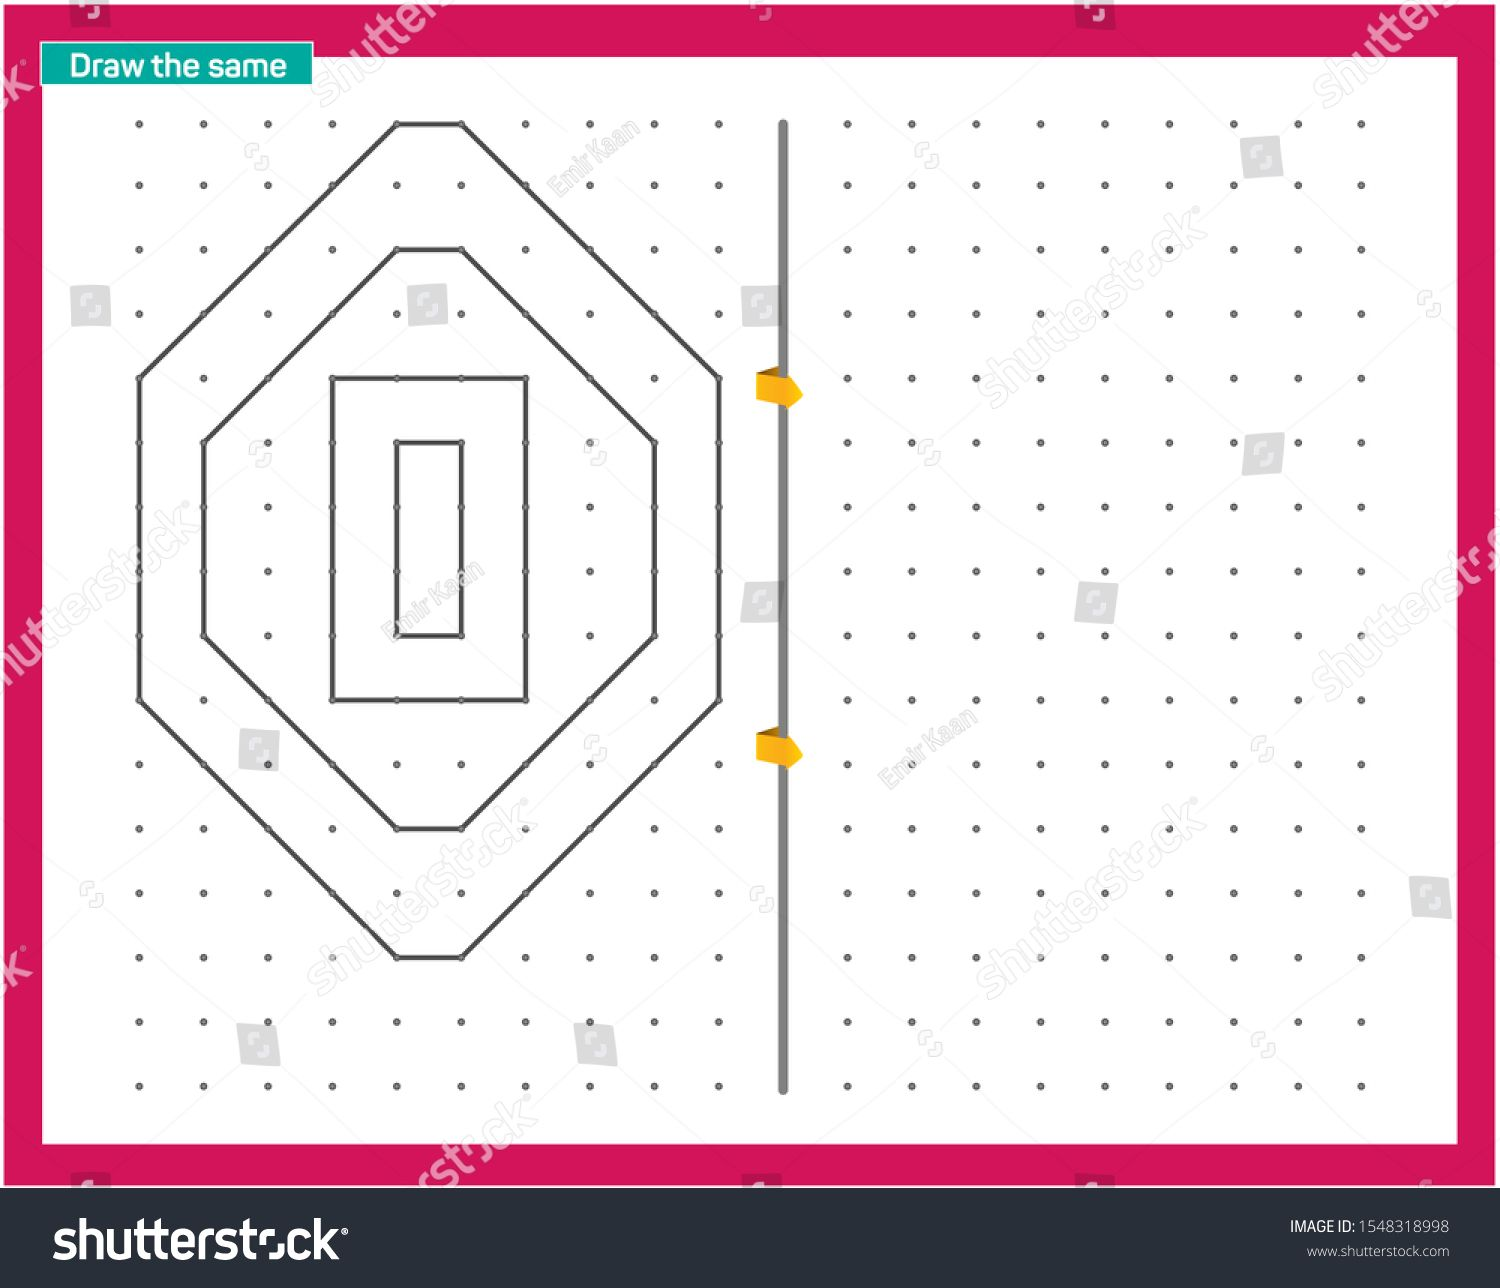 Point And Line Work Educational Children Game Printable